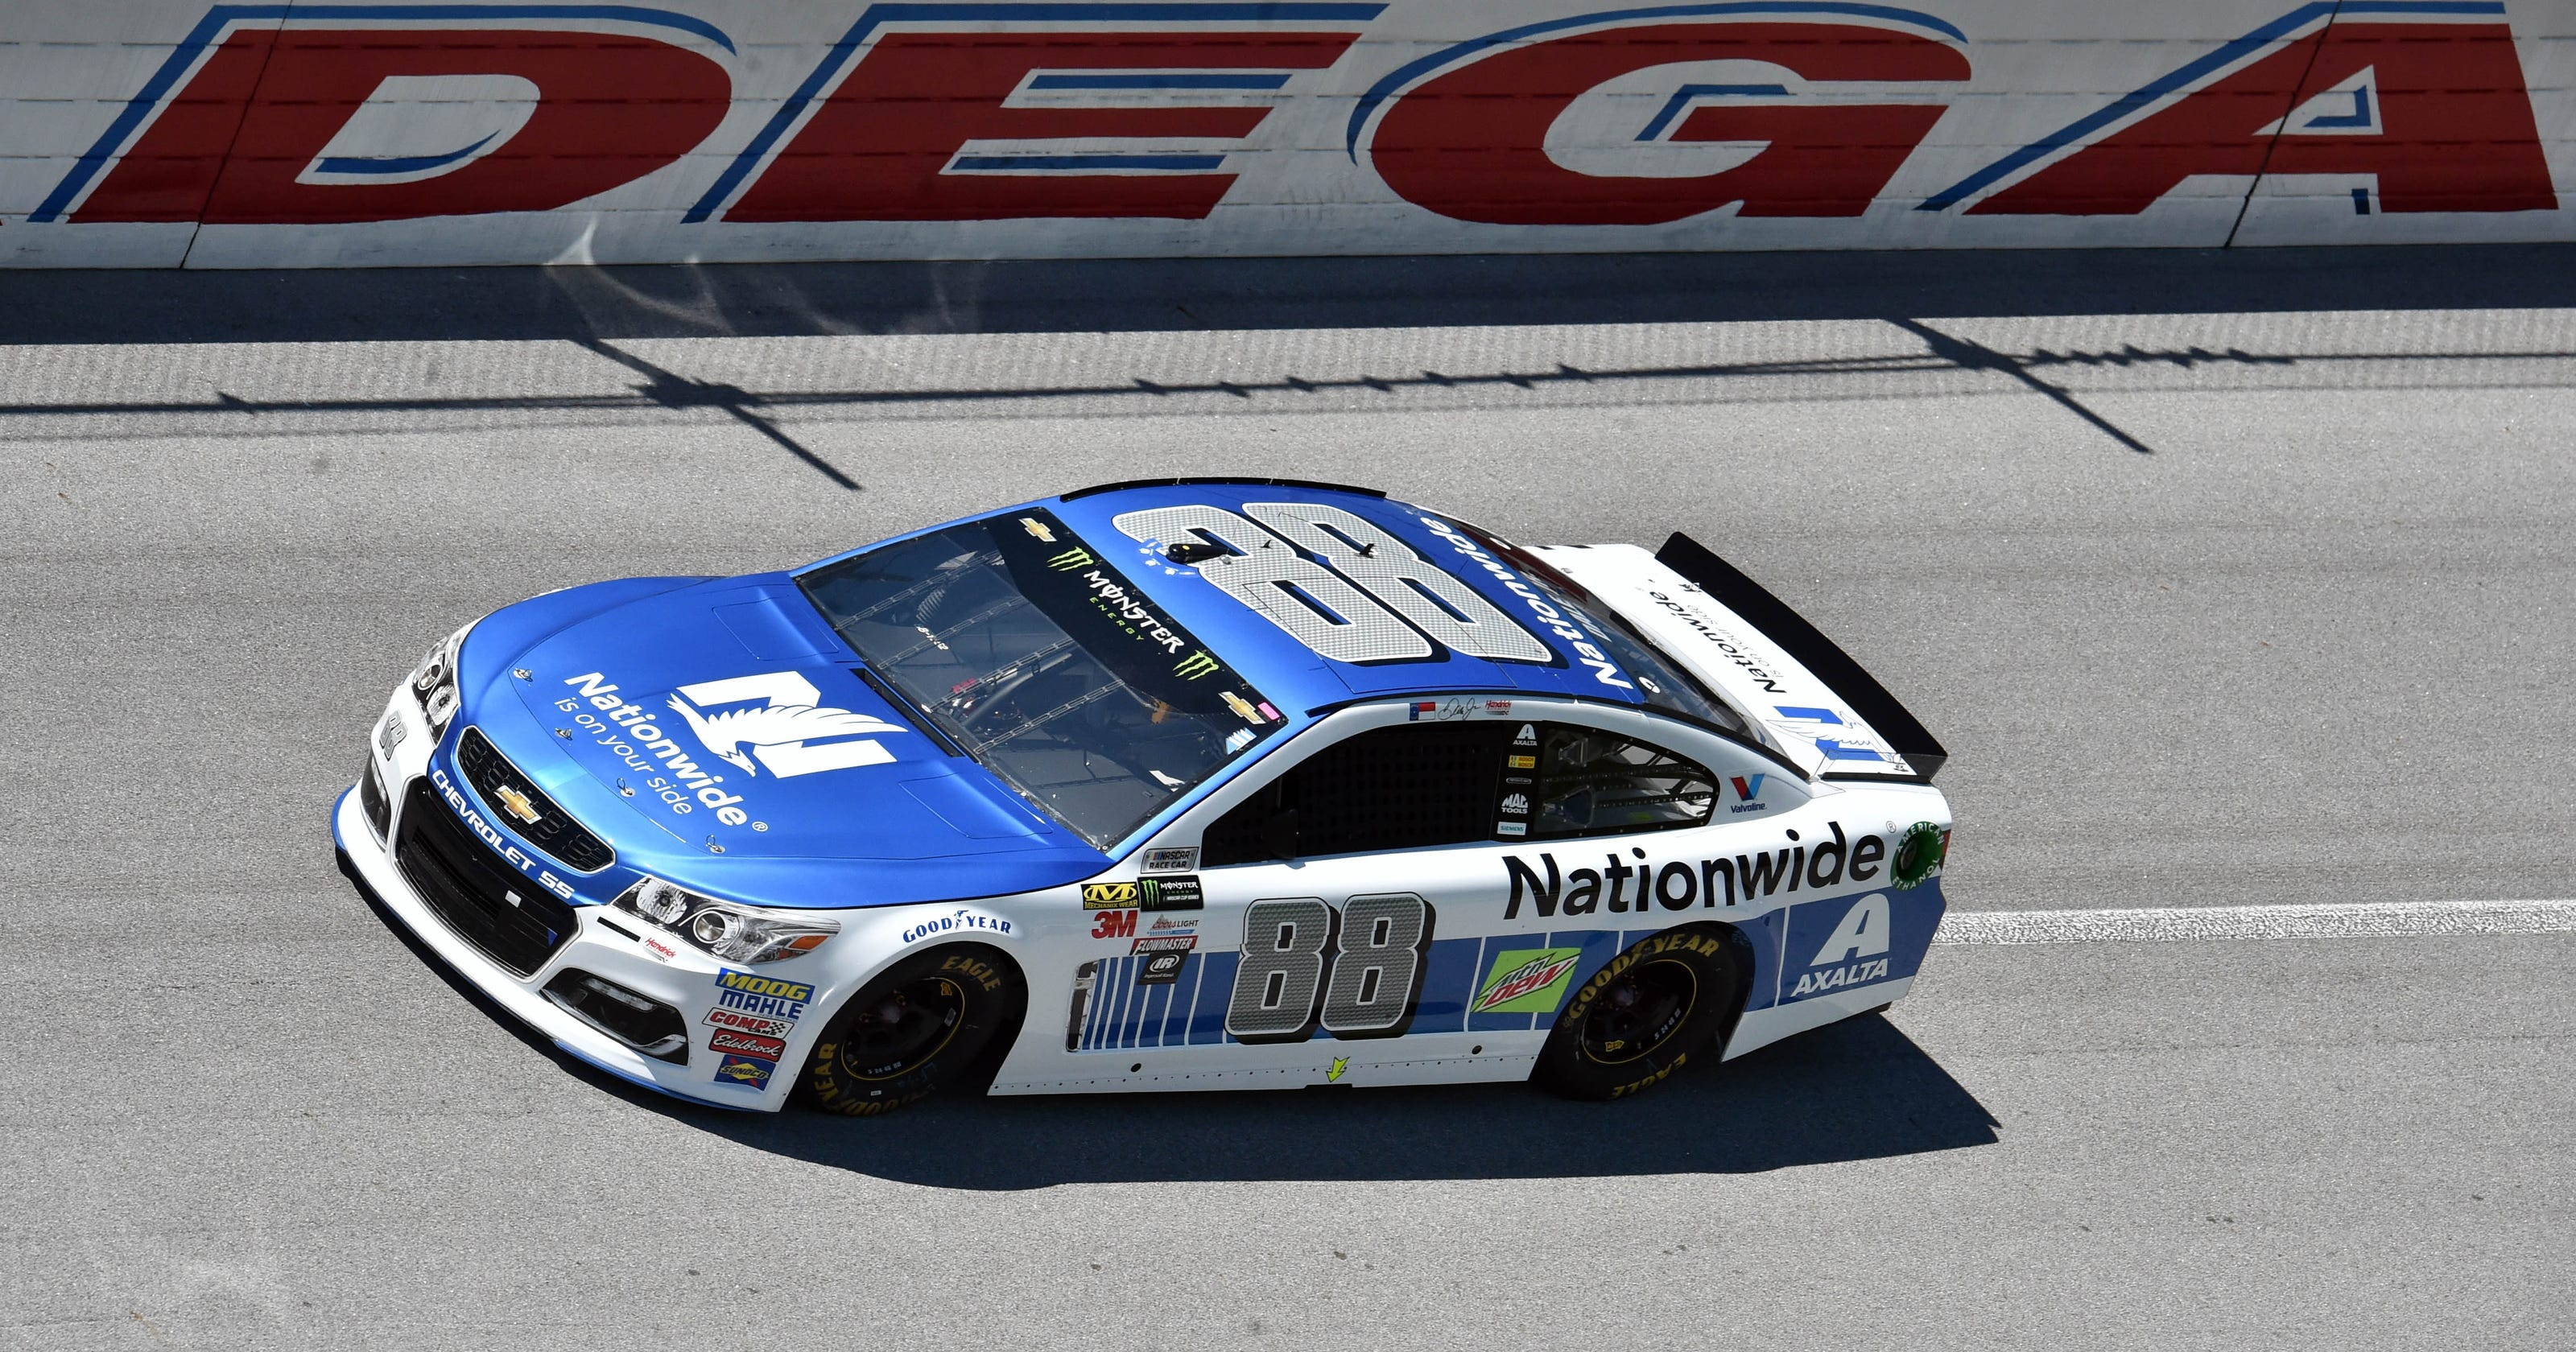 1080 Best Images About Nascar And Dale Jr On Pinterest: NASCAR: Dale Earnhardt Jr. Prepares For Final Cup Race At